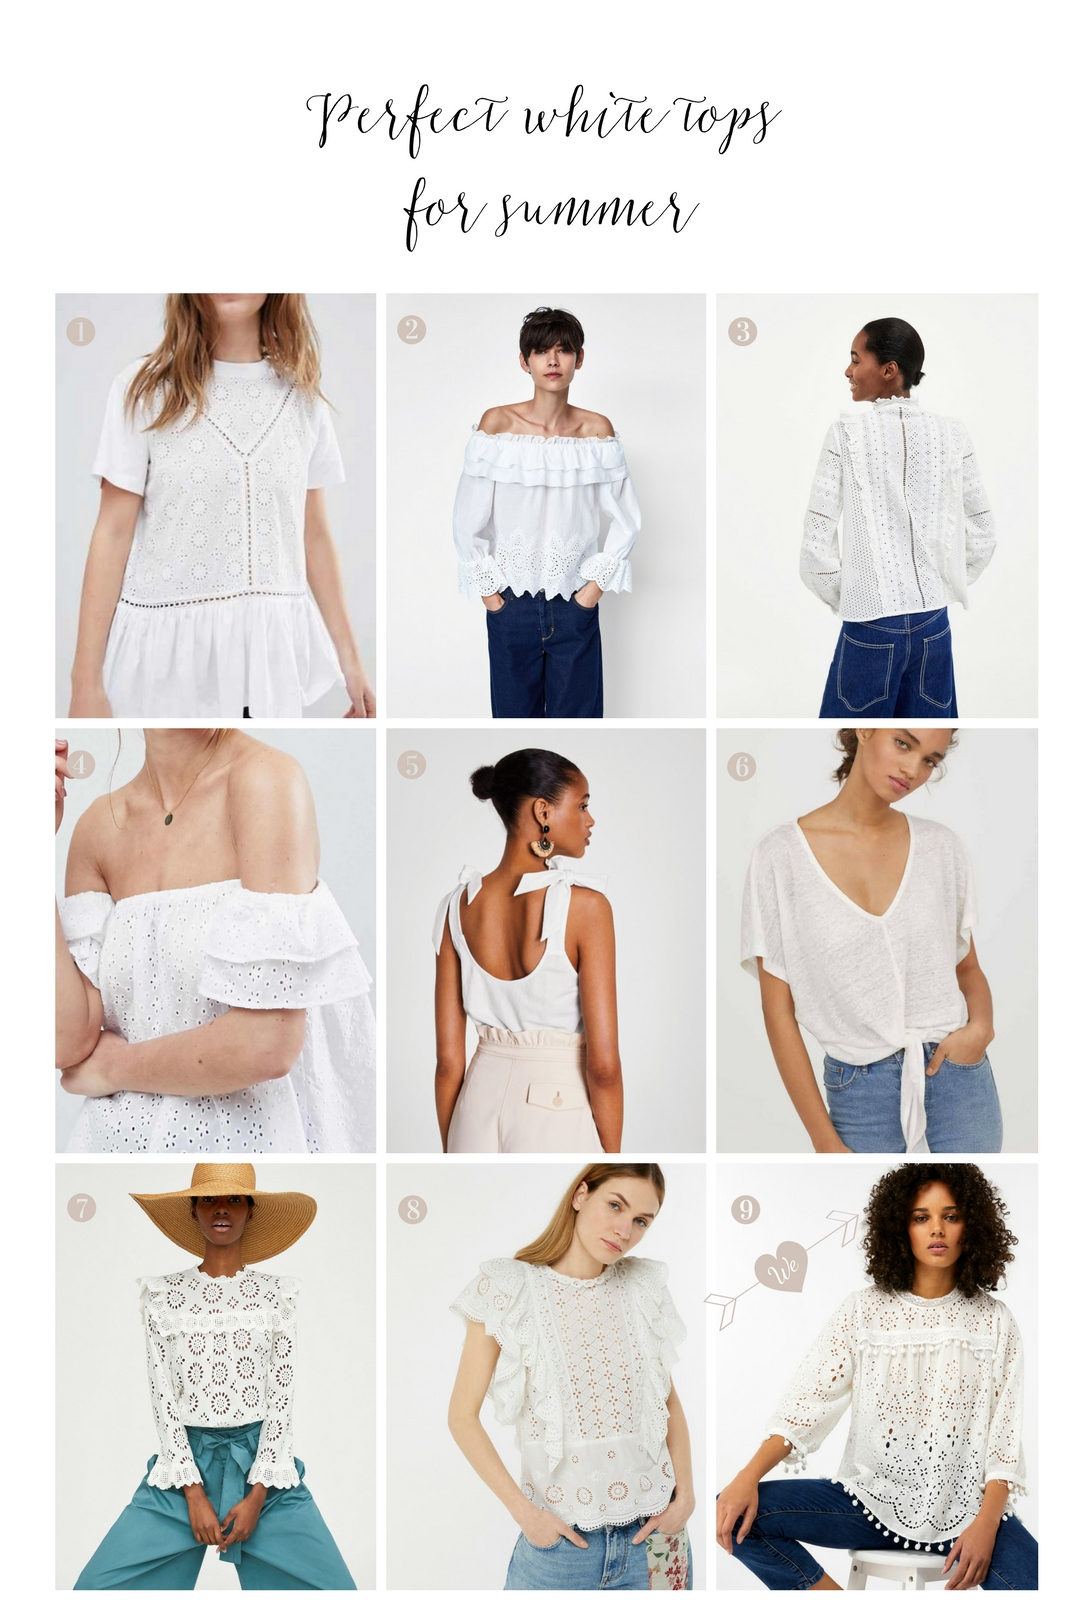 9 pretty white tops for summer